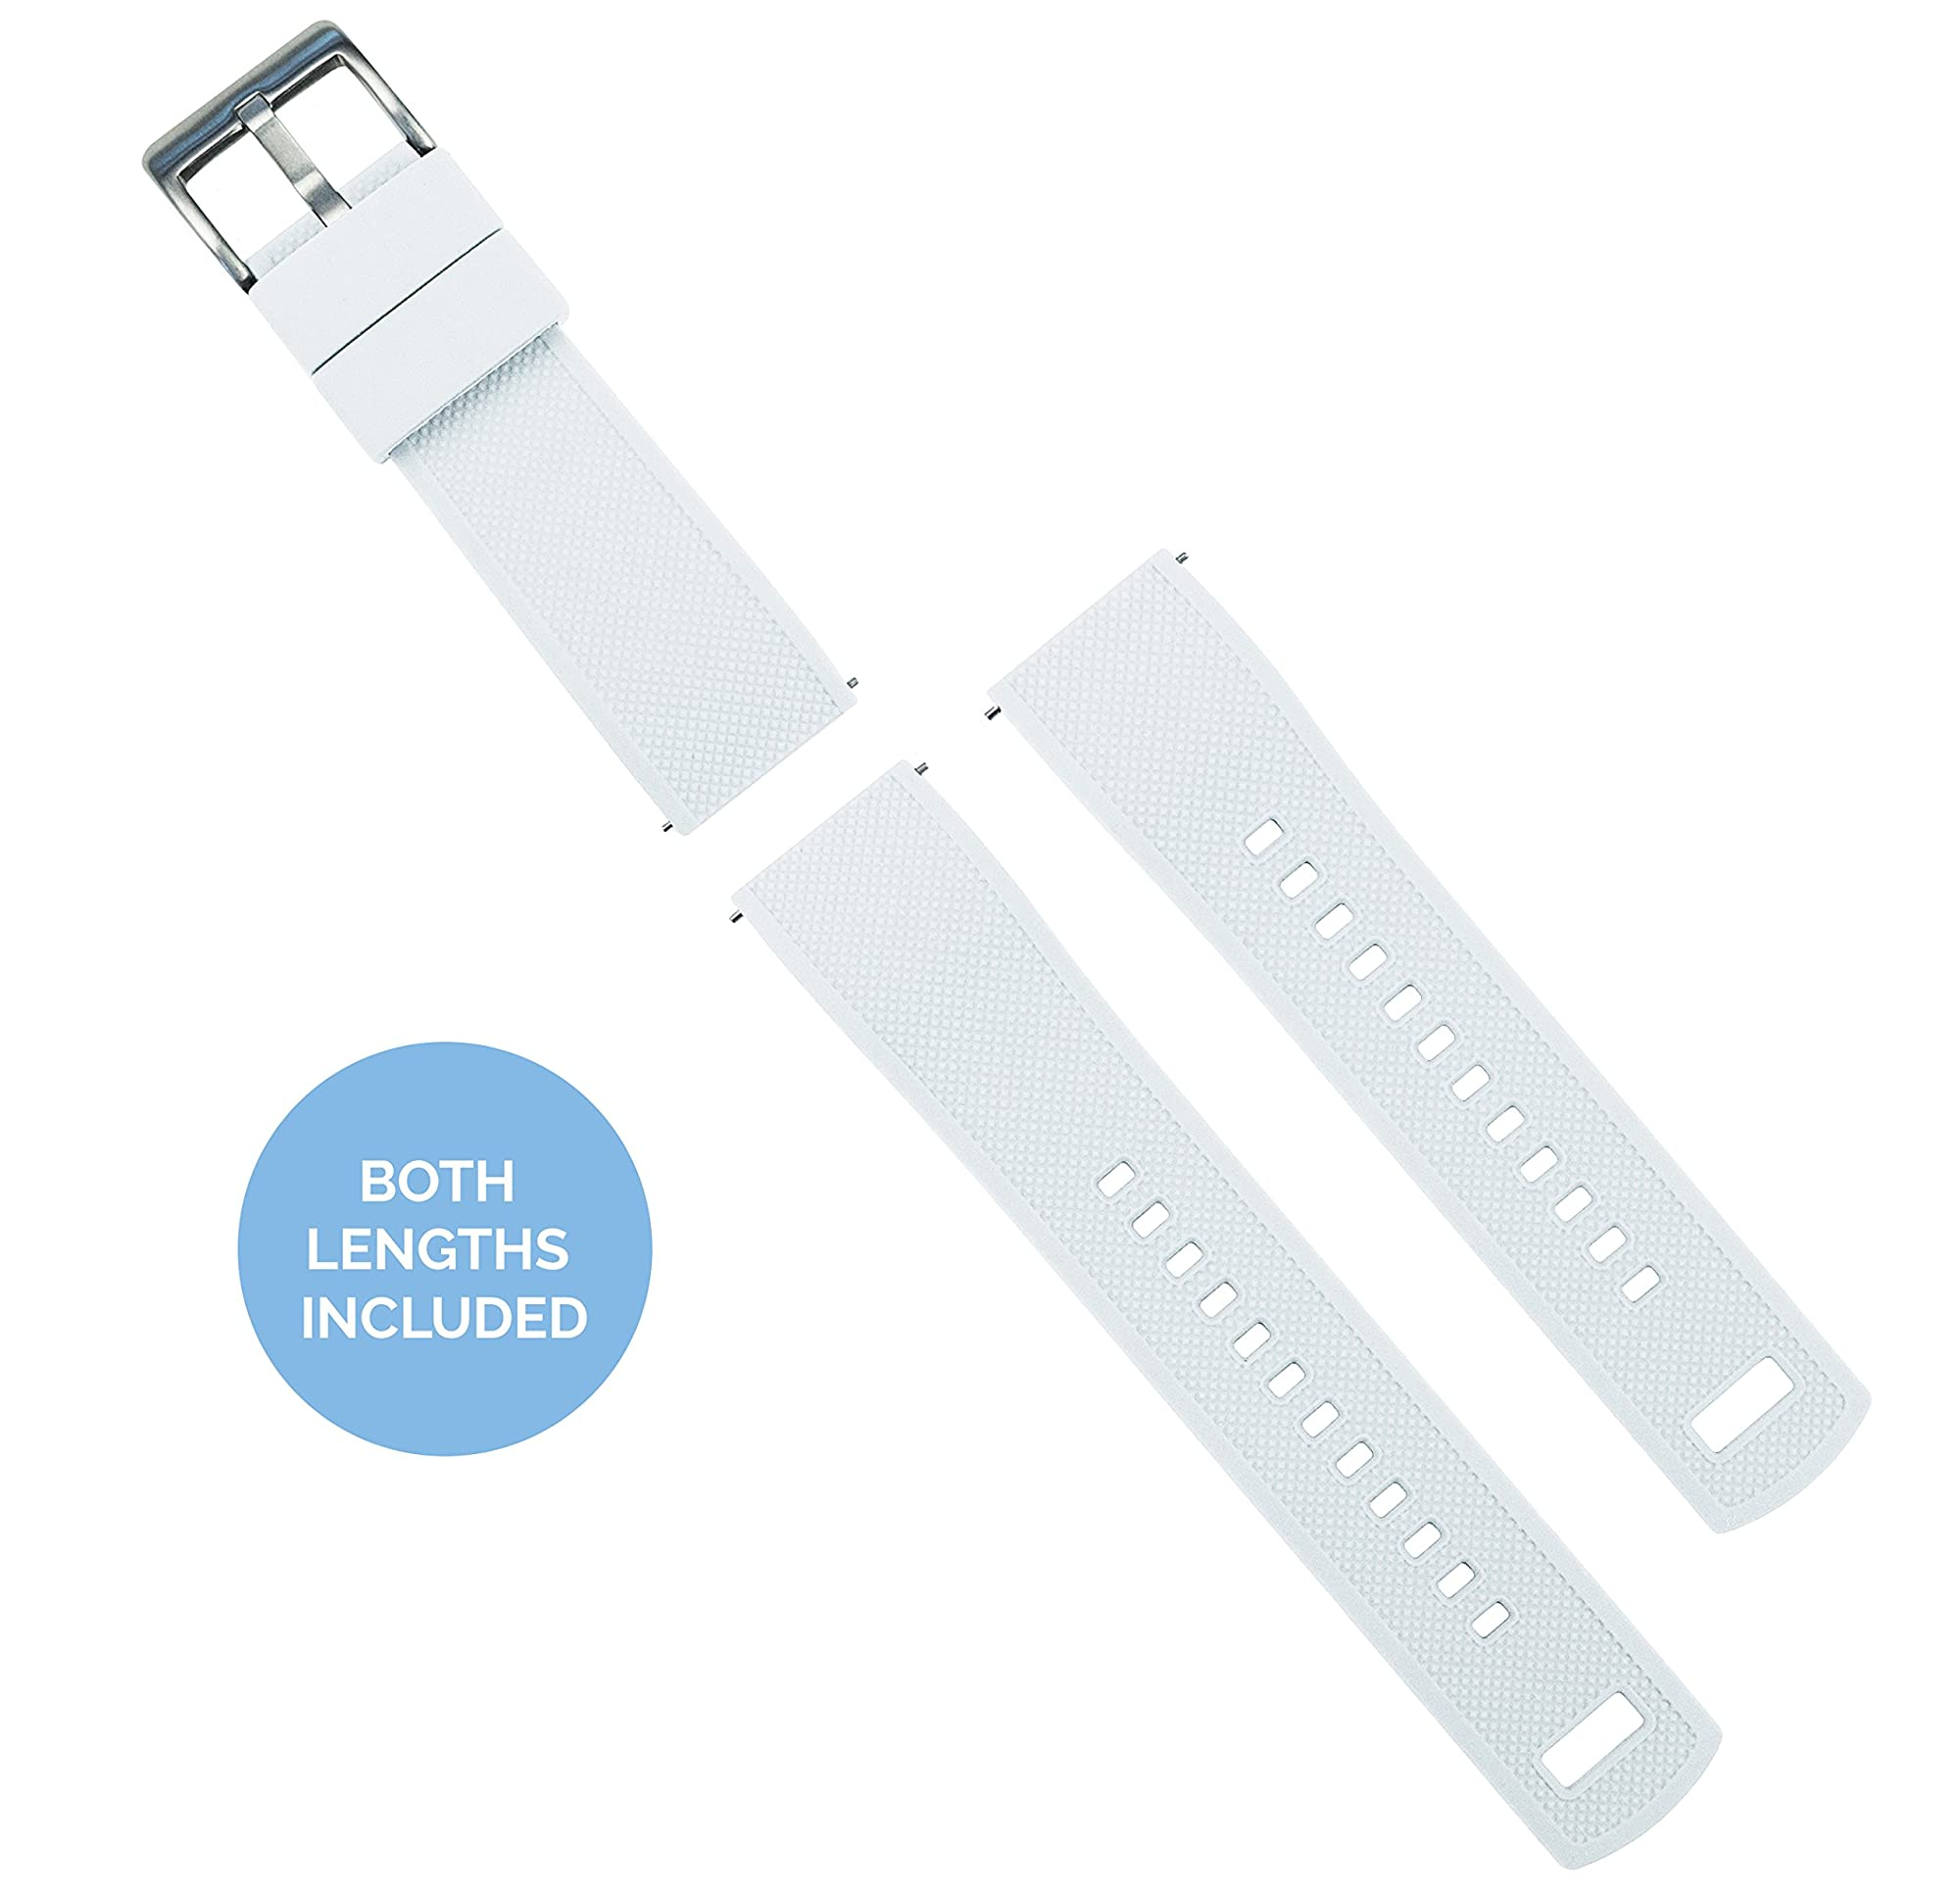 Lightweight Silicone Watch Bands For Men And Women